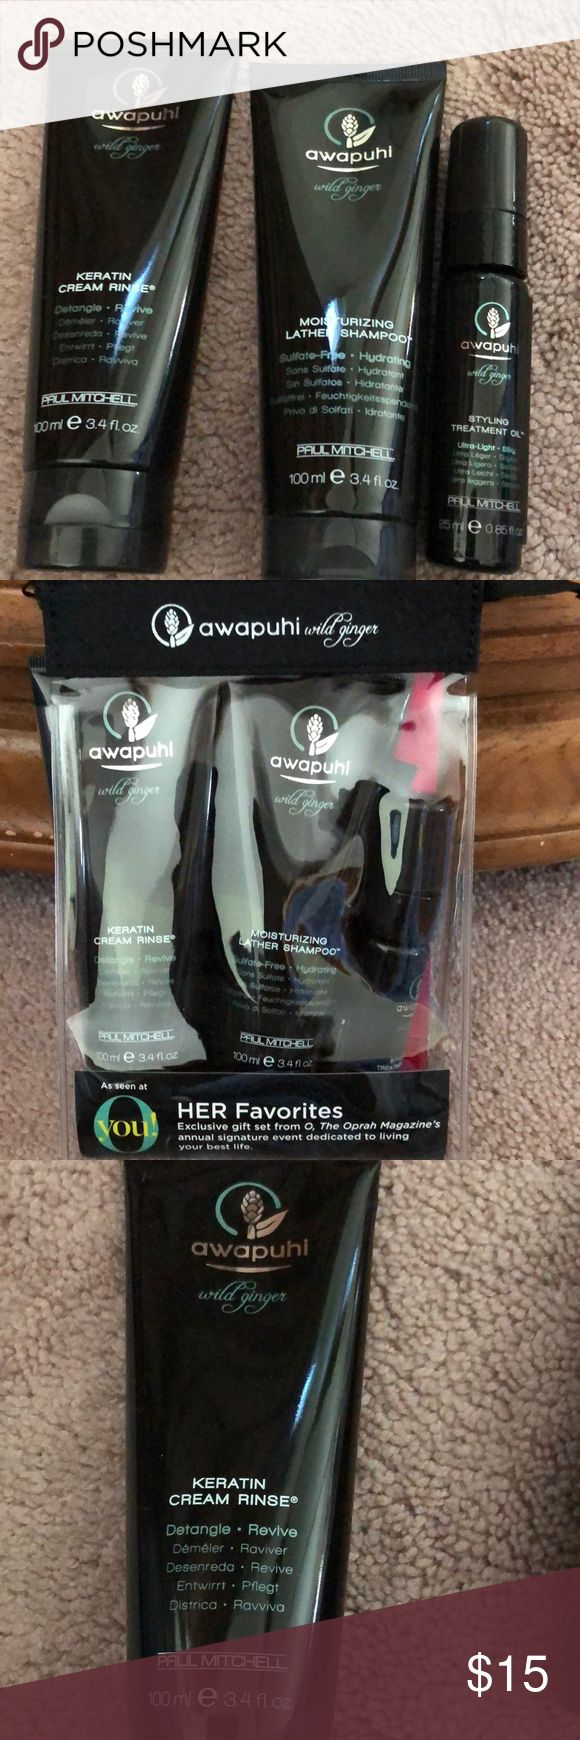 Paul Mitchell Awapuhi Hair product kit New sealed in package. Paul Mitchell Awapuhi Hair product kit. Included is 3.4 oz keratin creme rinse, 3.4 oz moisturizing shampoo and .85 oz styling treatment oil. Comes in clear zipper pouch. Makes a great gift! Paul Mitchell Makeup